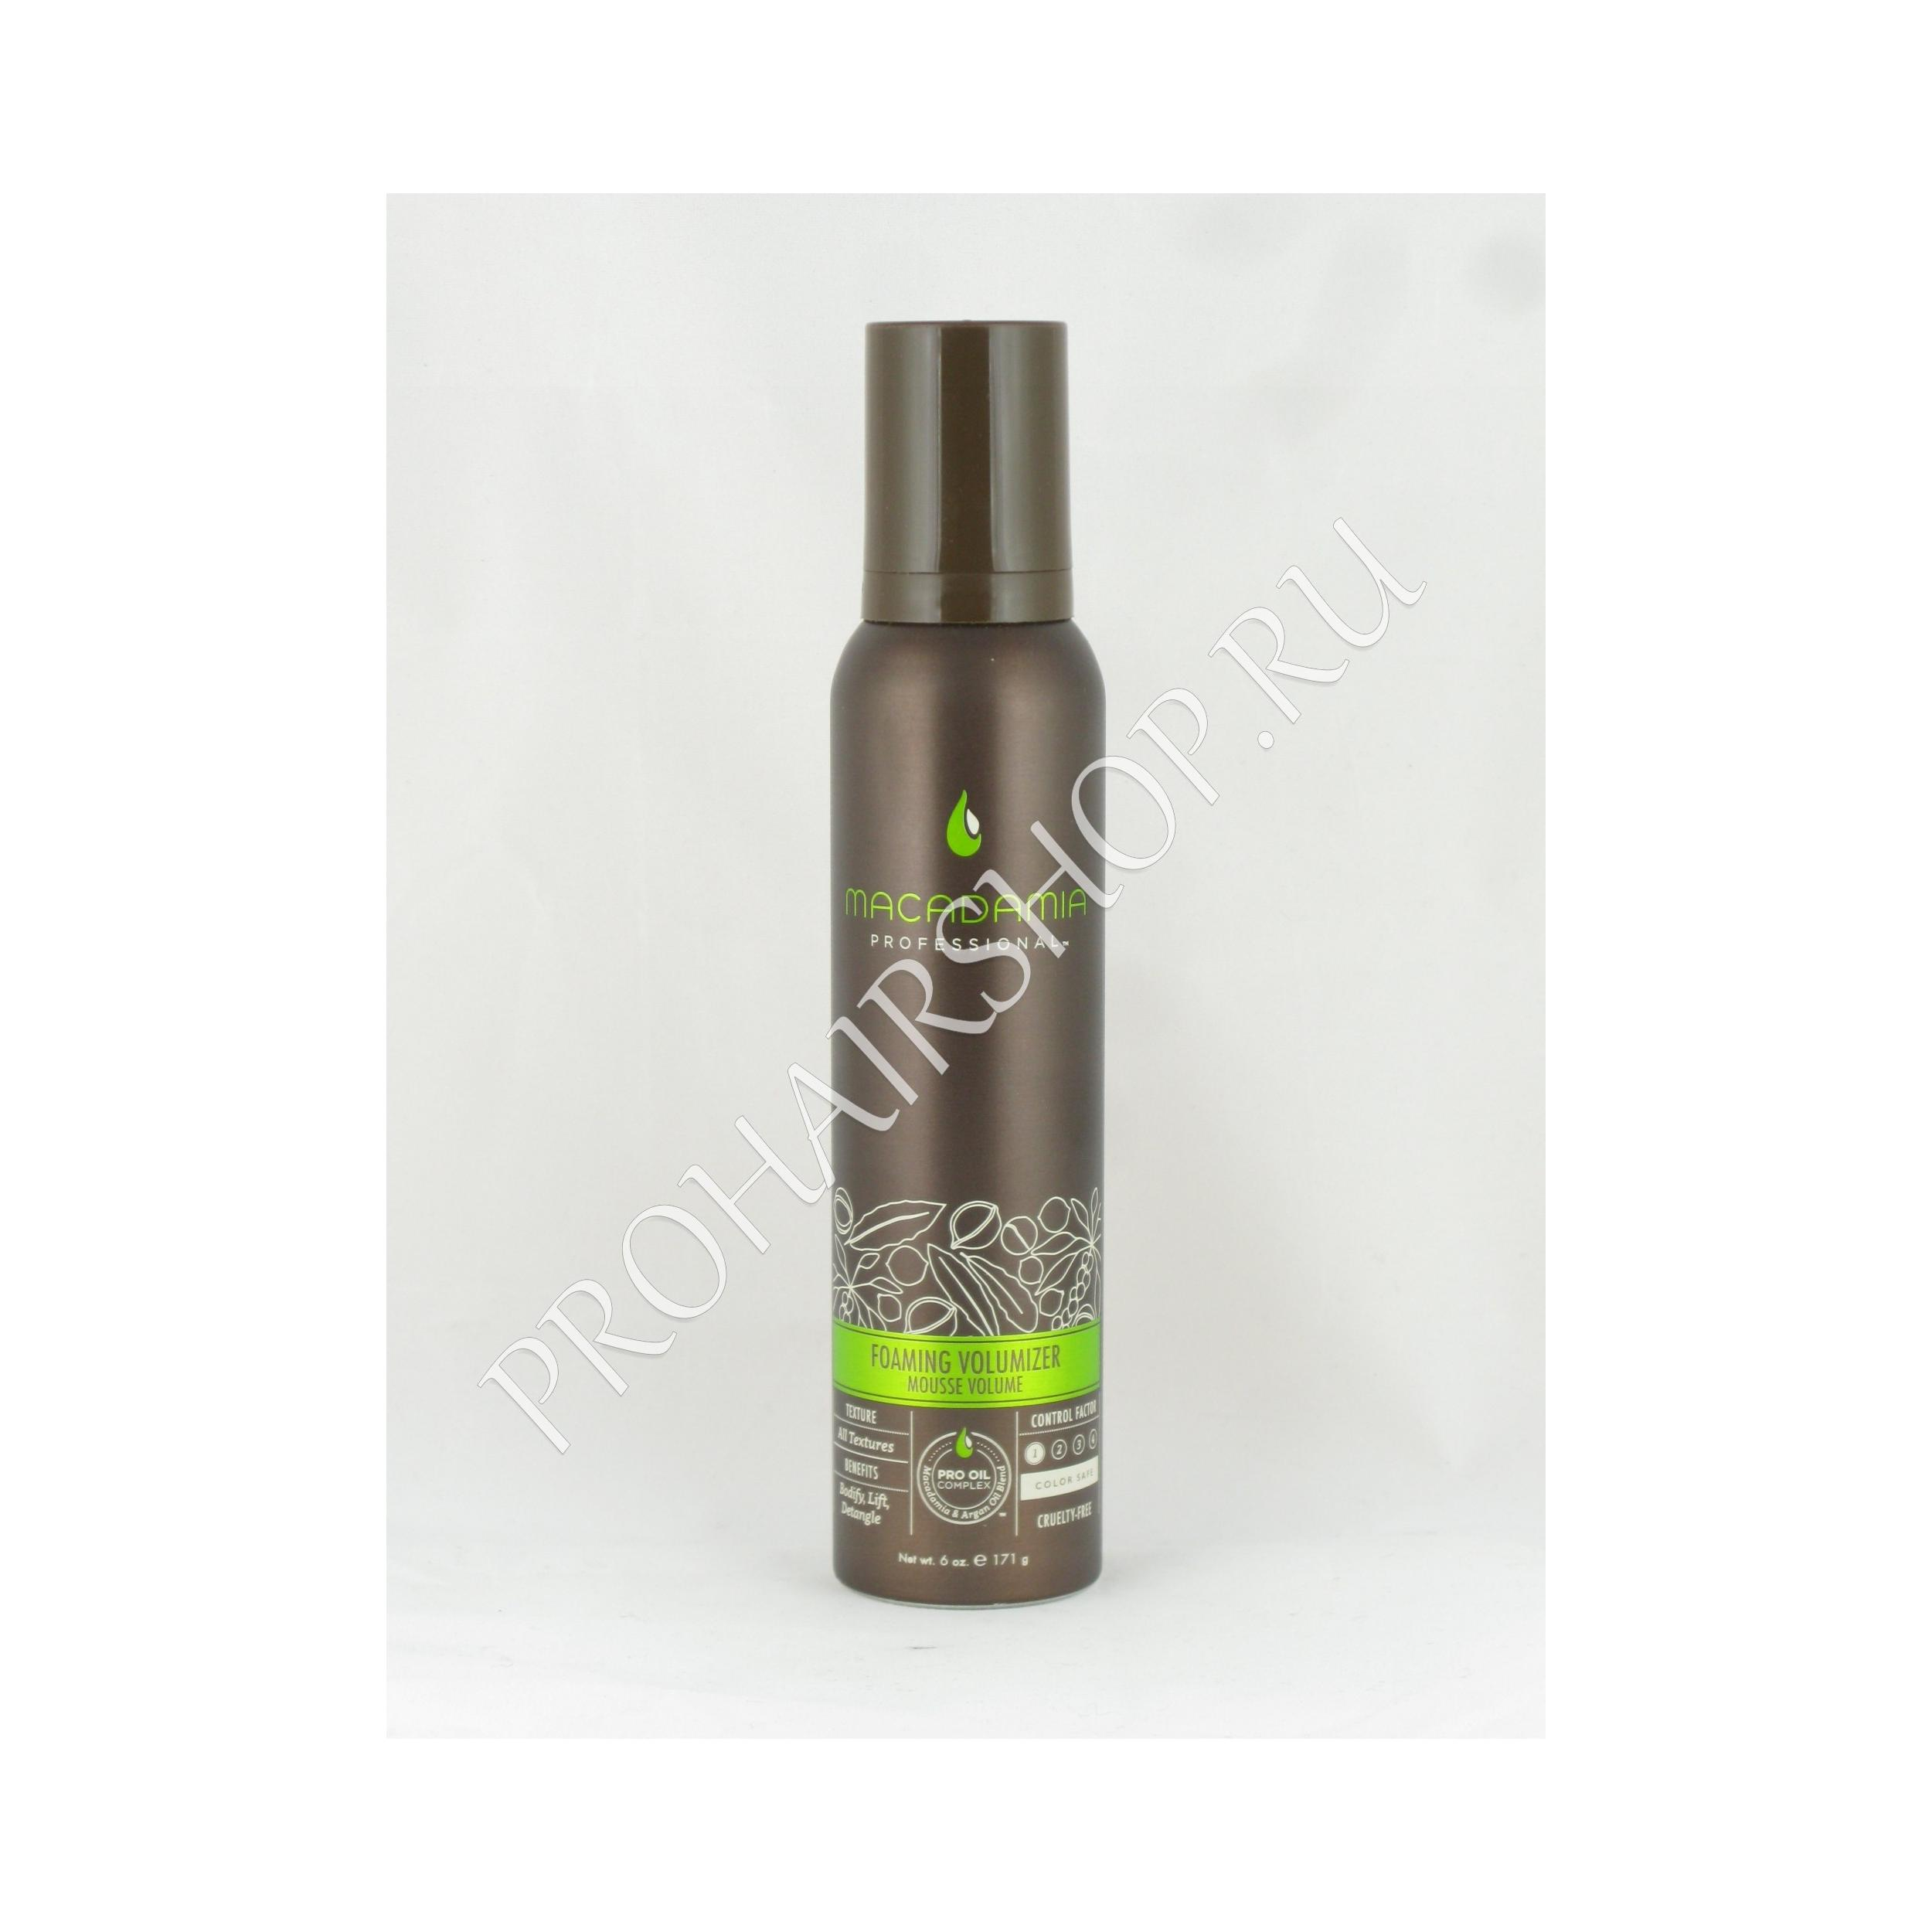 Macadamia PROFESSIONAL Foaming Volumizer Mousse Volume - Мусс для объема